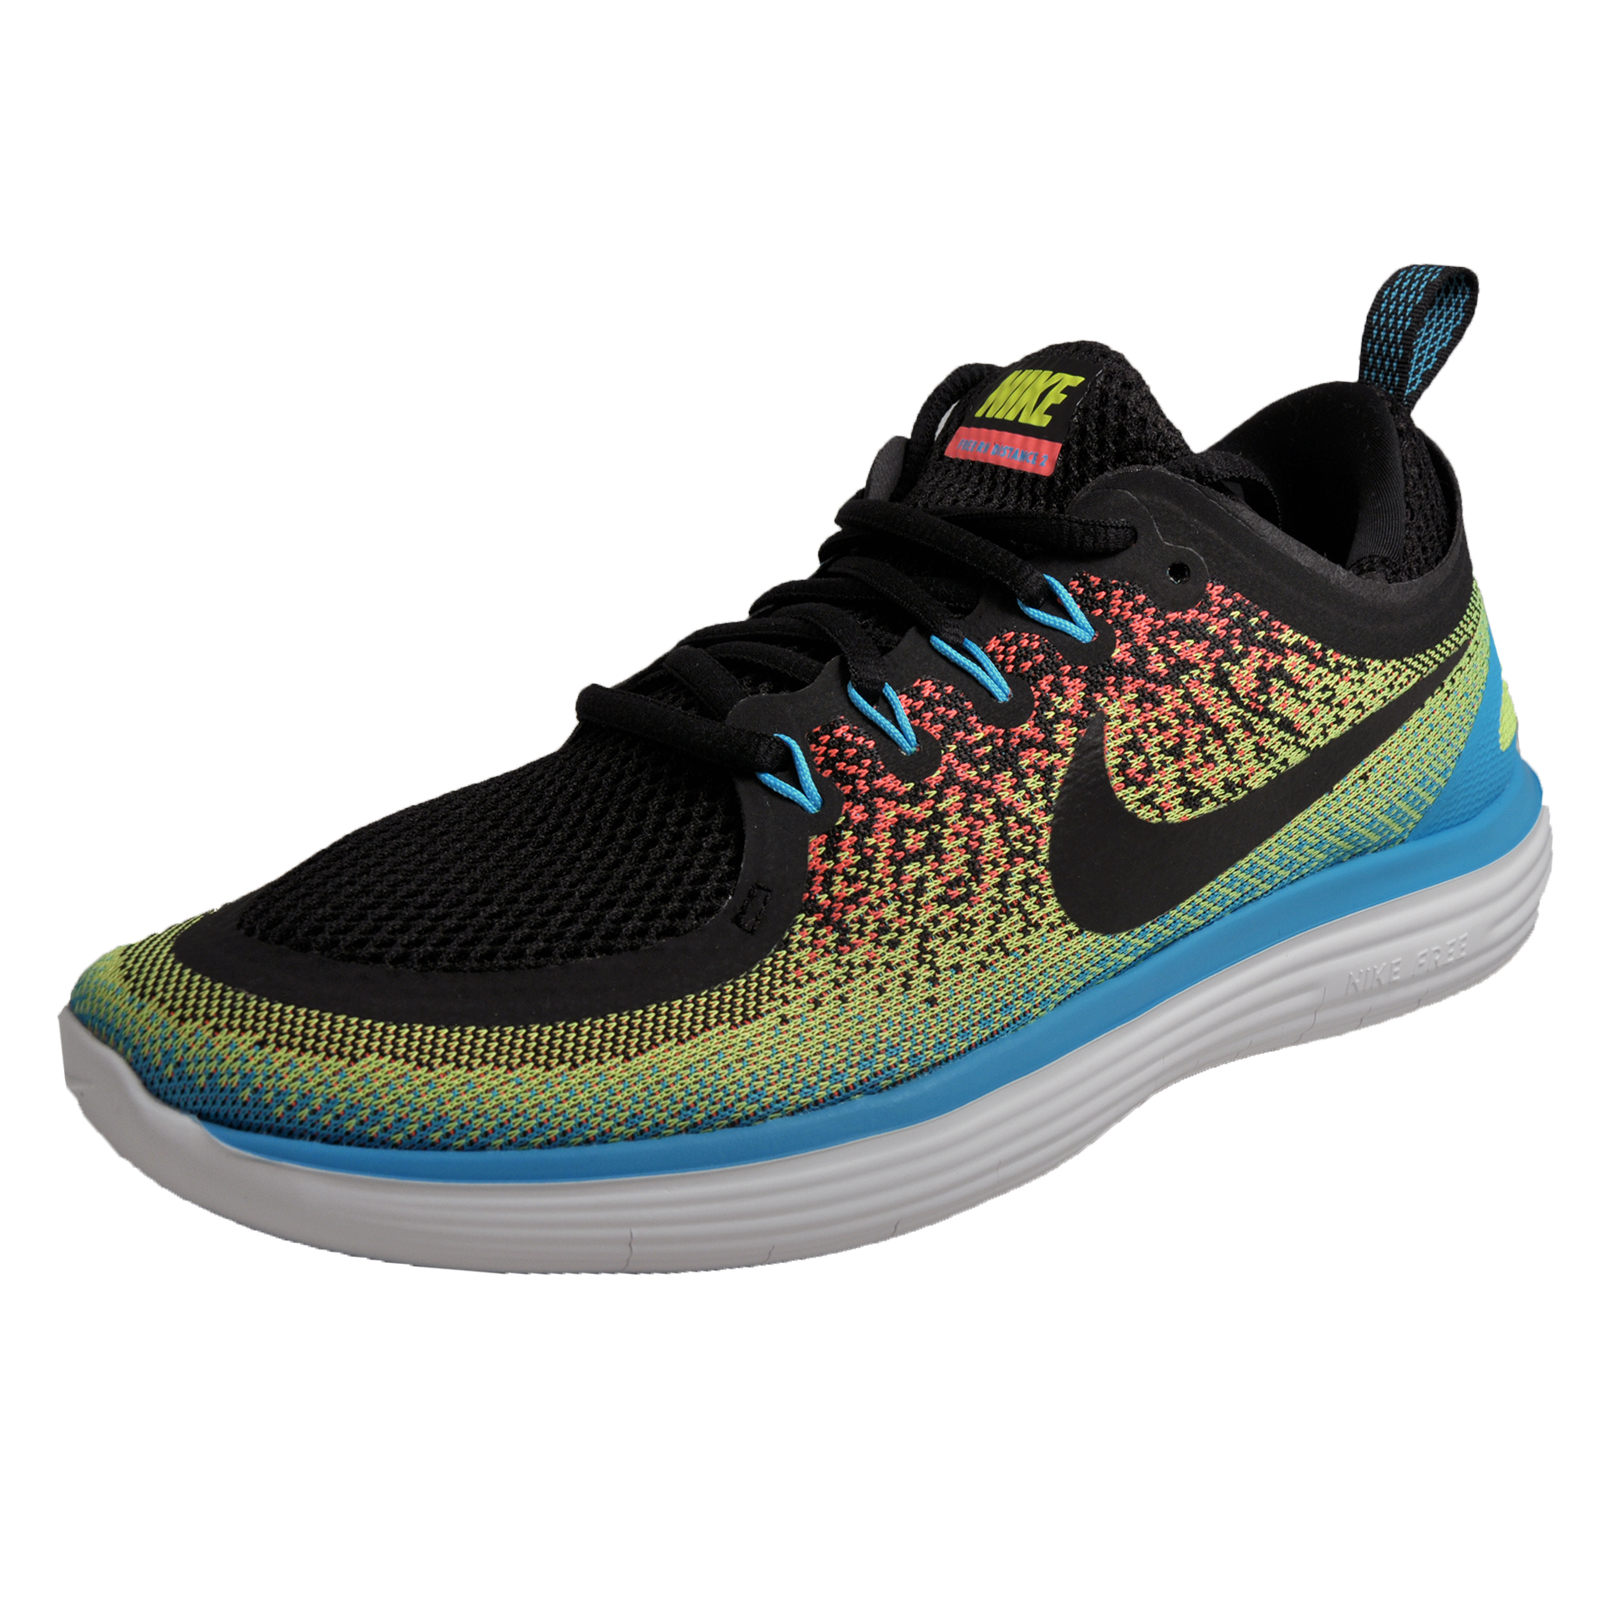 7a373bfb21d0 Details about Nike Free Run Distance 2 Mens Running Shoes Fitness Trainers  Black